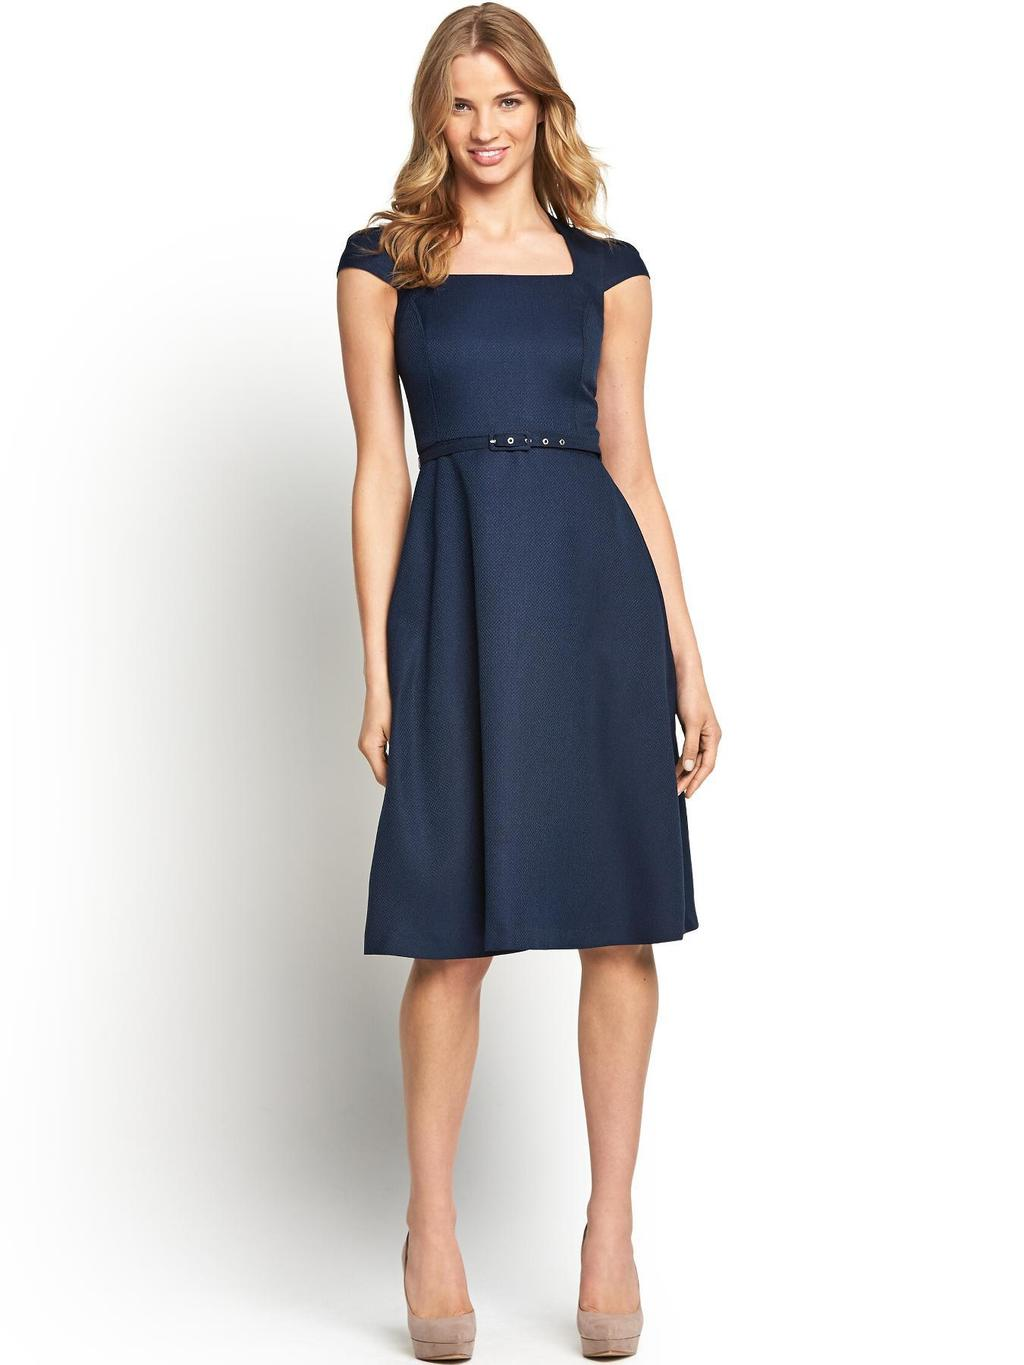 Mix And Match Dress, Navy, Stone - sleeve style: capped; pattern: plain; waist detail: belted waist/tie at waist/drawstring; predominant colour: navy; occasions: casual, occasion, creative work; length: on the knee; fit: fitted at waist & bust; style: fit & flare; fibres: polyester/polyamide - 100%; hip detail: subtle/flattering hip detail; sleeve length: short sleeve; neckline: low square neck; texture group: other - light to midweight; season: s/s 2014